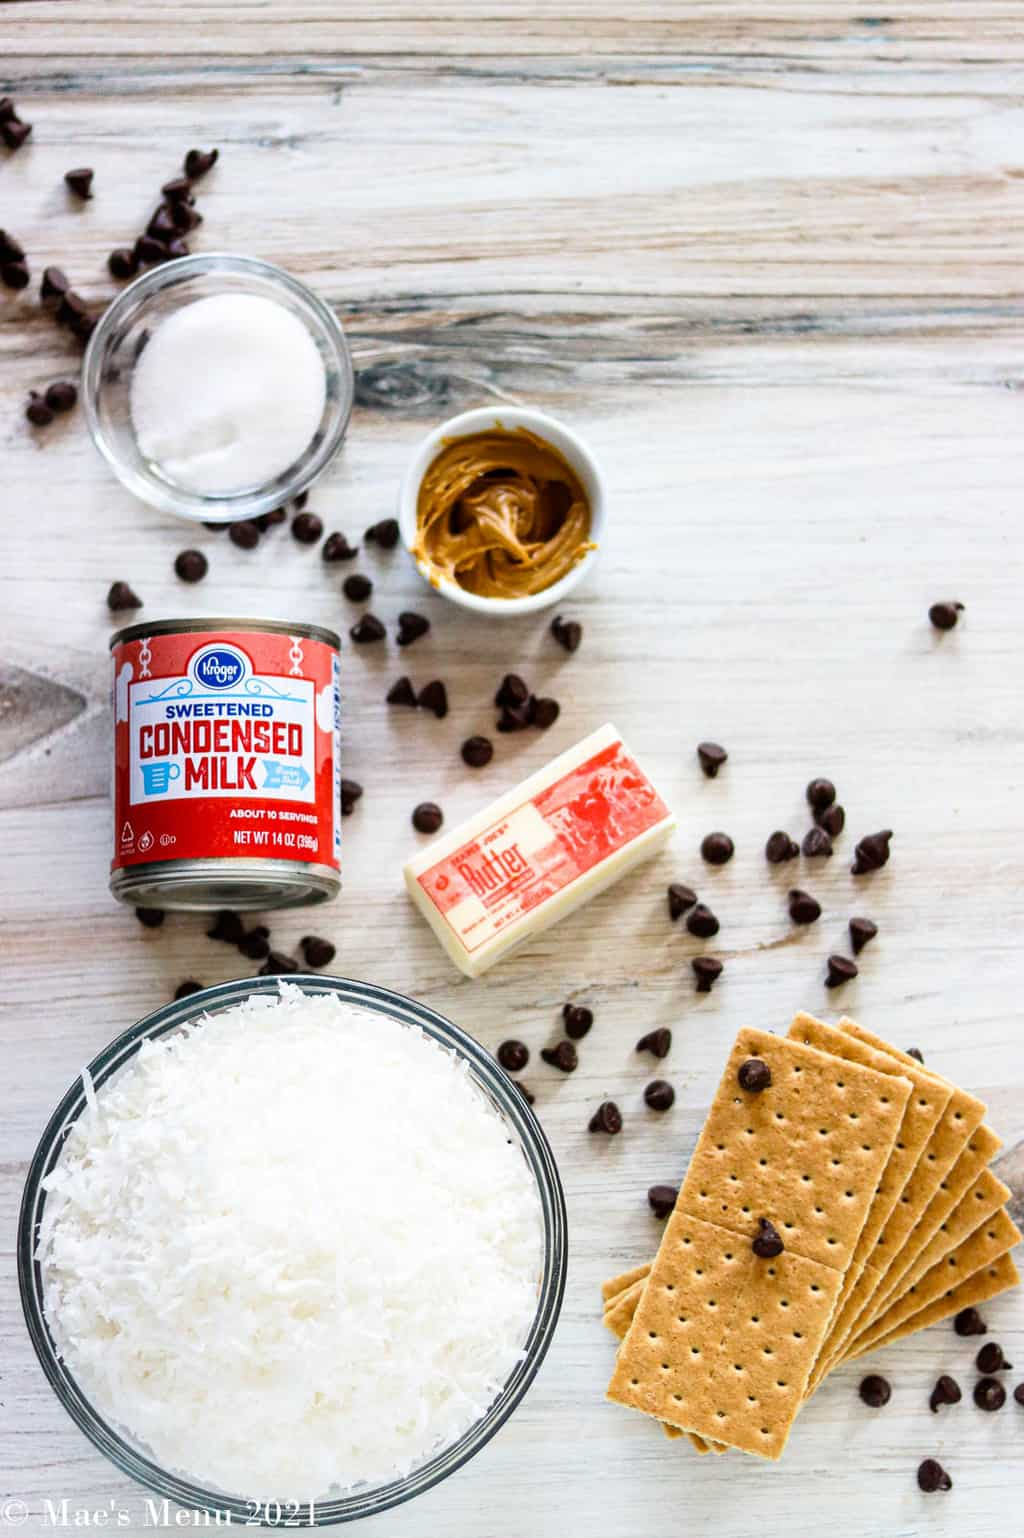 All the ingredients for chocolate coconut bars: sweetened condensed milk, sugar, peanut butter, butter, chocolate chips, shredded coconut, and graham crackers